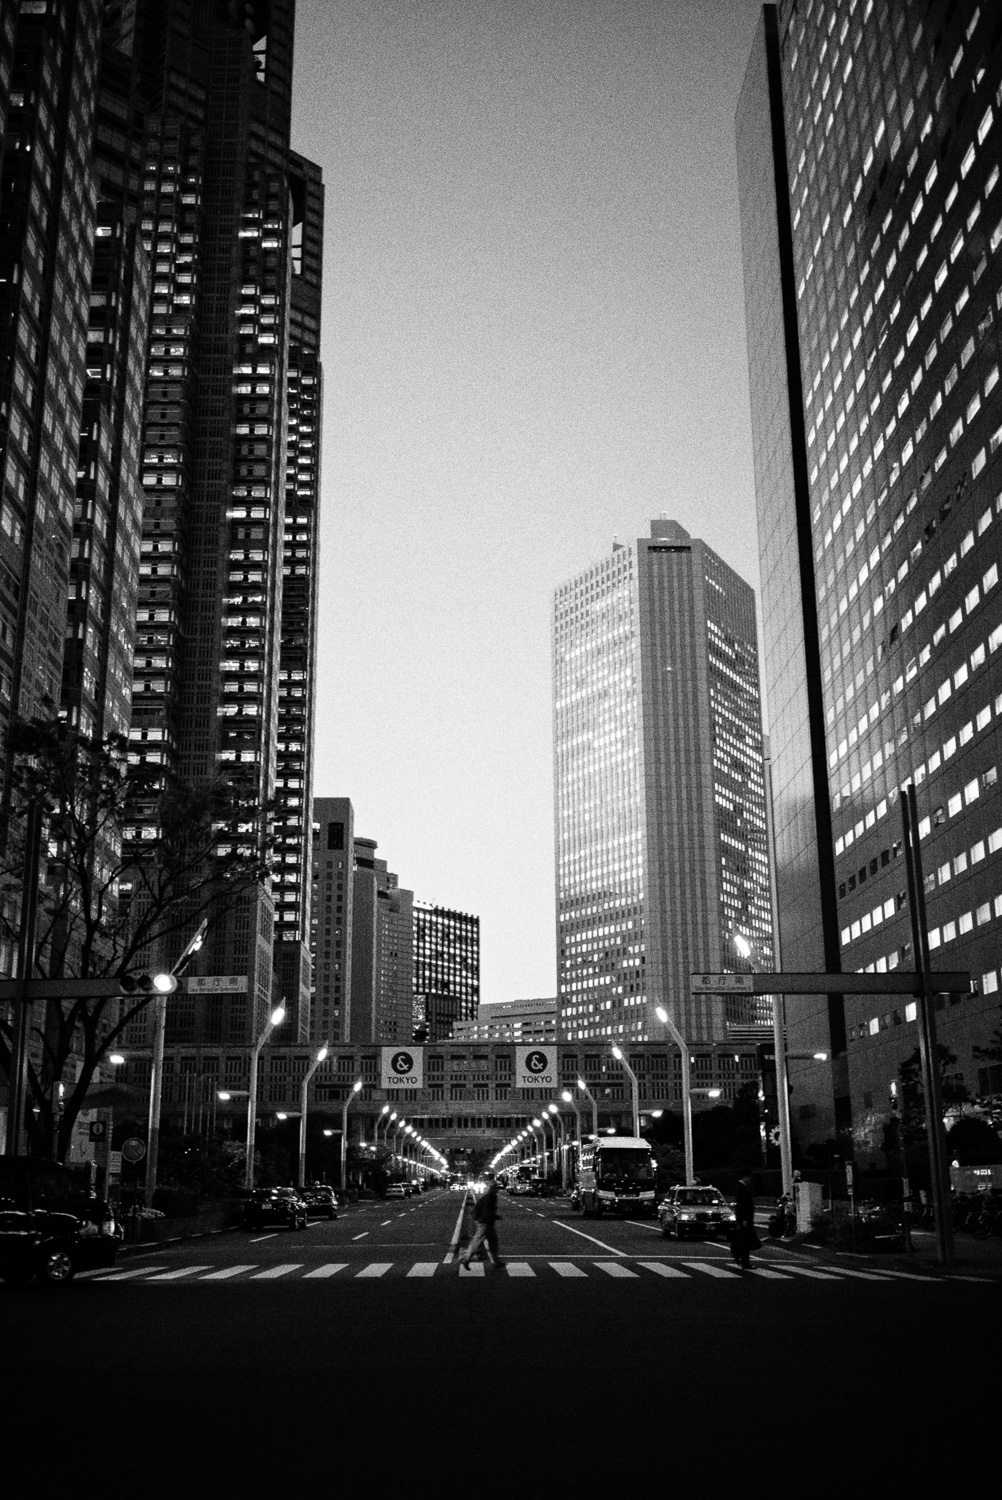 Business district in Shinjuku, on our way to Park Hyatt and New York Bar.